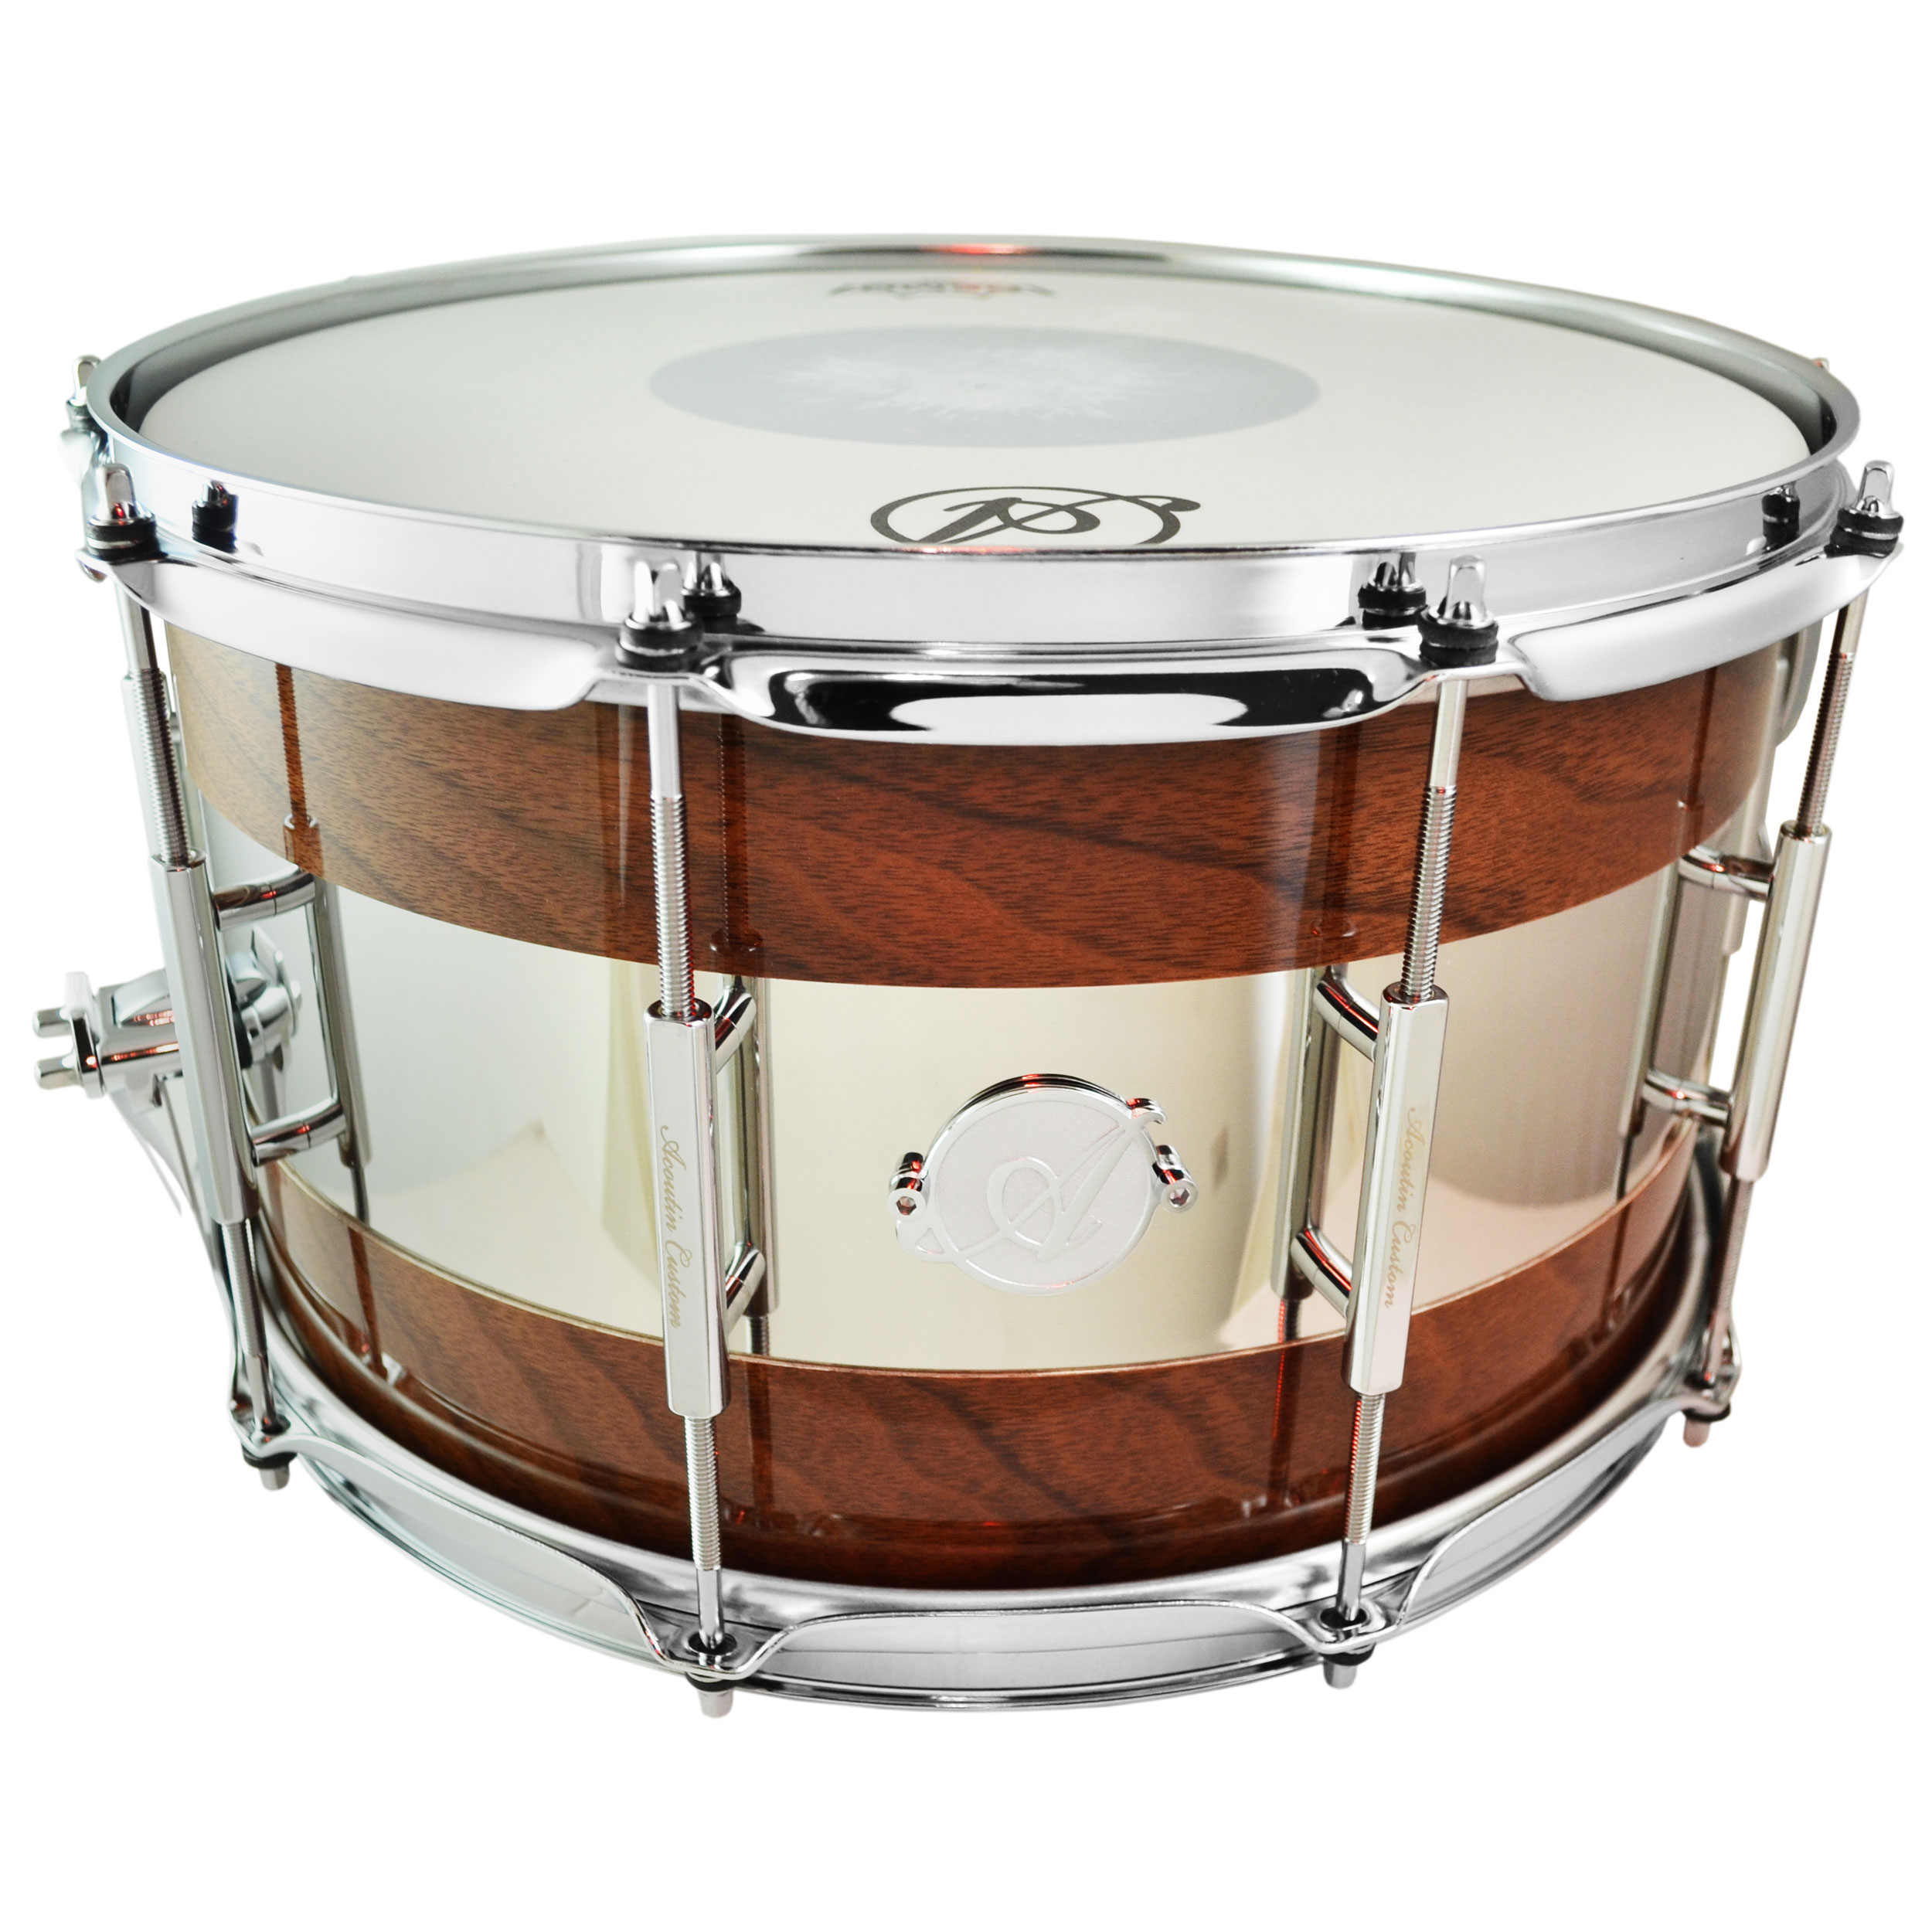 "Acoutin 8"" x 14"" Walnut & Polished Stainless Steel Snare Drum in High Gloss"